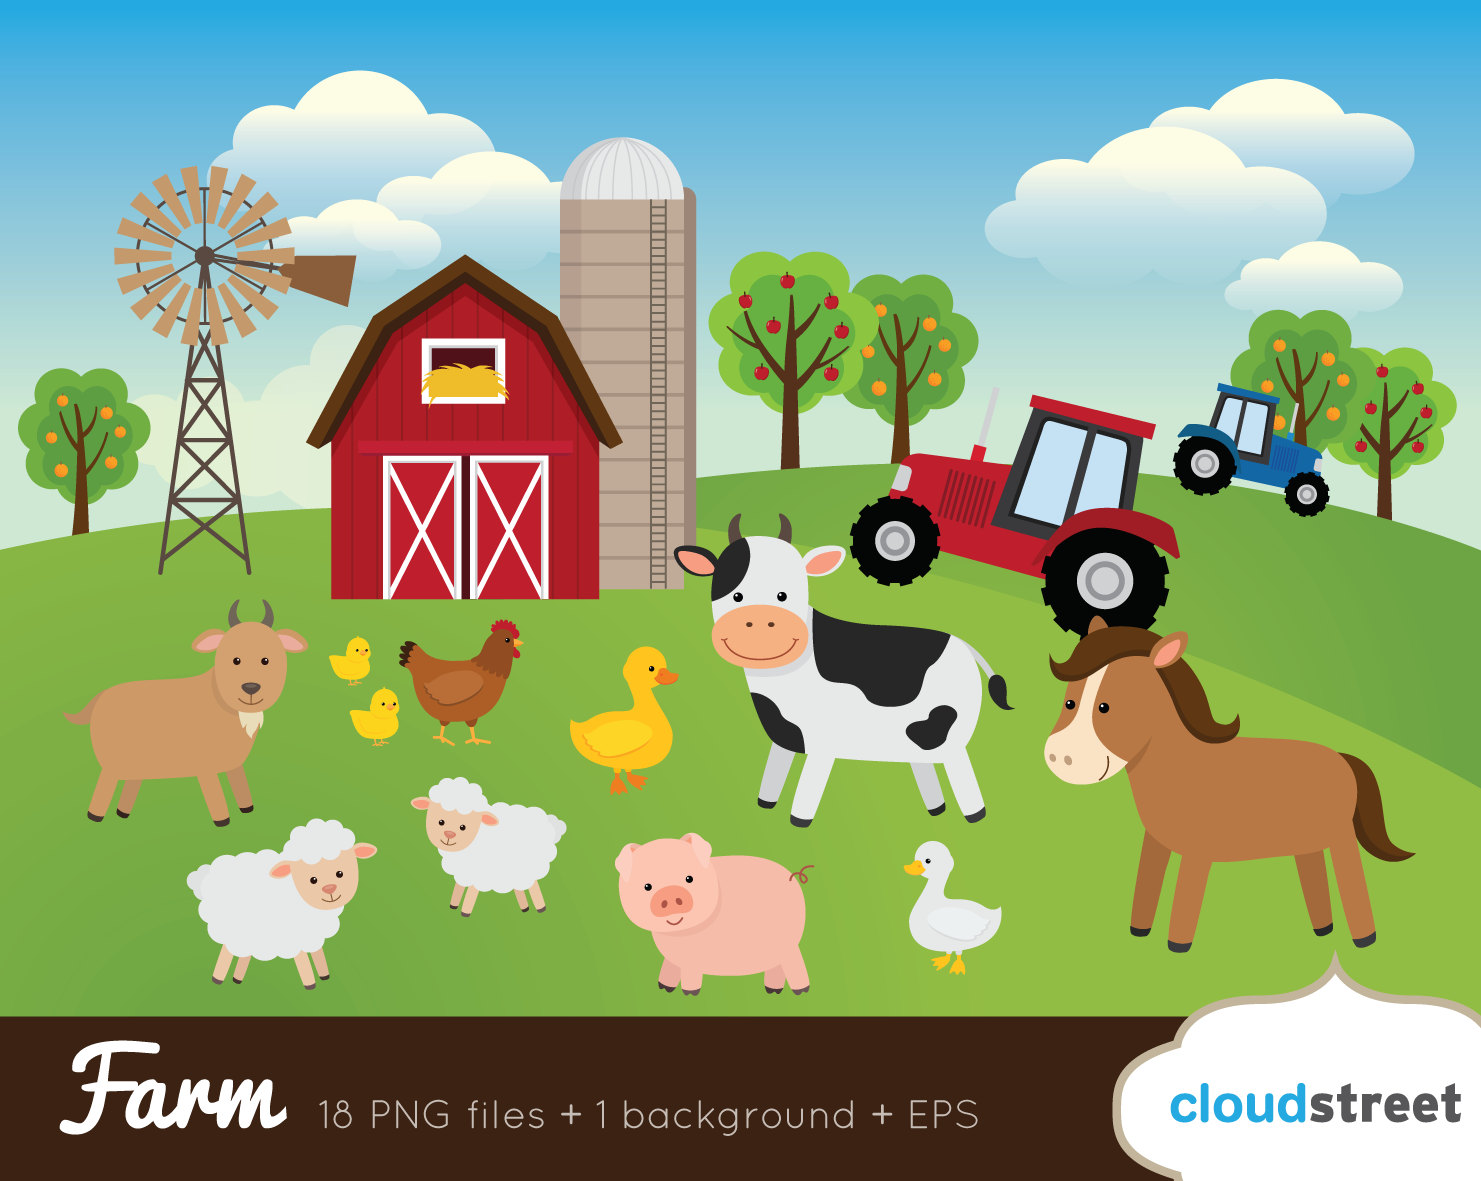 buy 2 get 1 free Farm Clip Art / Farm Animals Clipart / barnyard vector graphics illustration / barn cow sheep pig horse commercial use ok